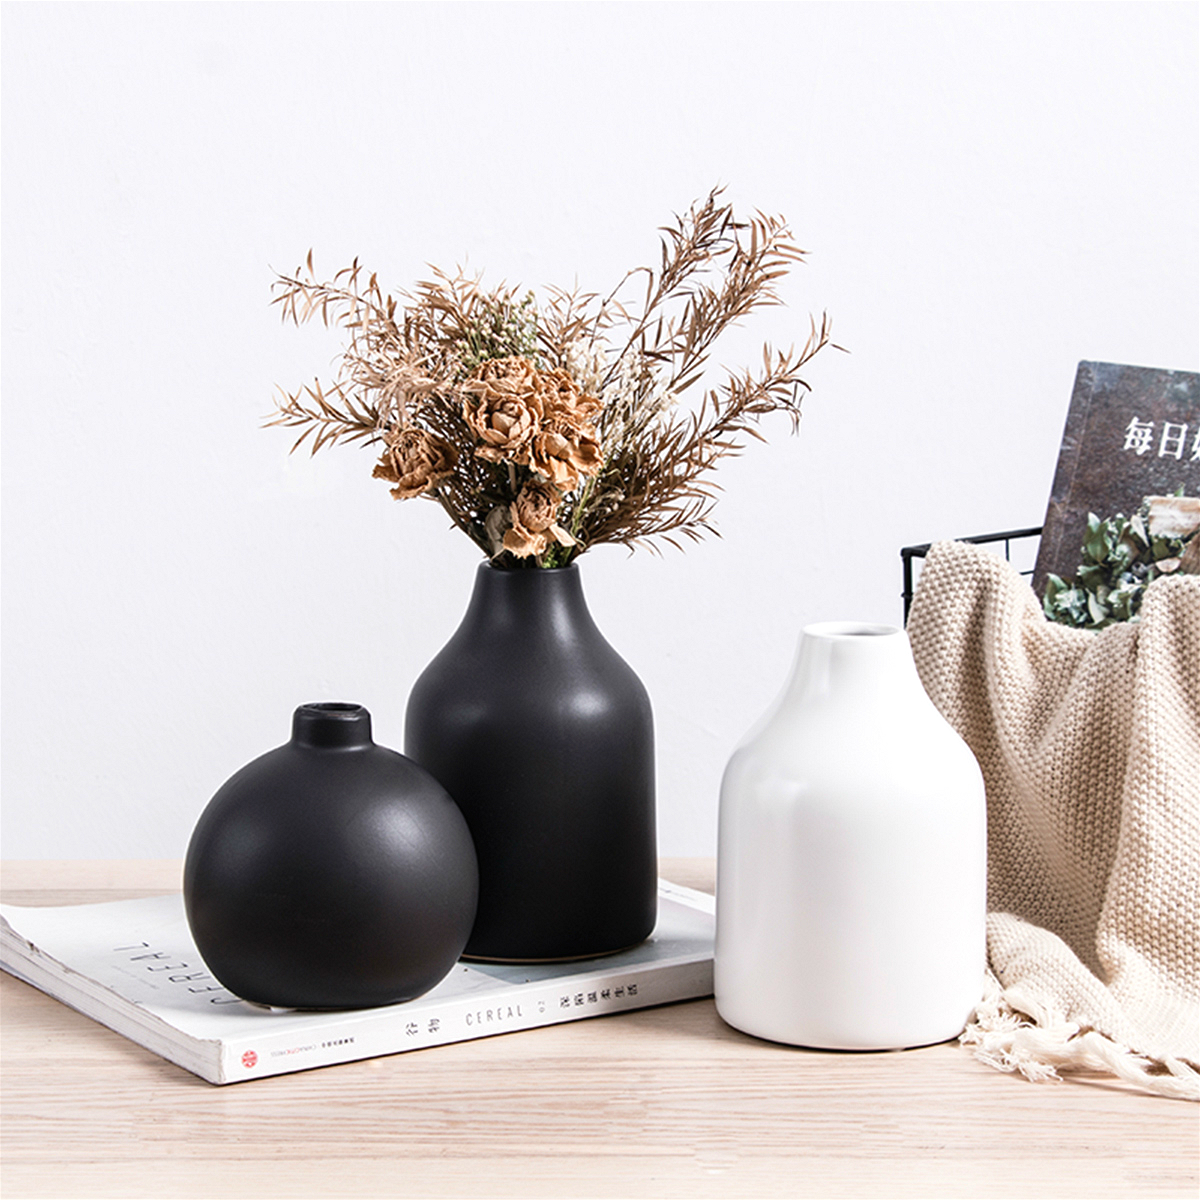 Nordic Style Ceramics Vases Hydroponics Plant Flower Home Decor for Artificial Flower Bouquet with Vase Wedding Table Decoration